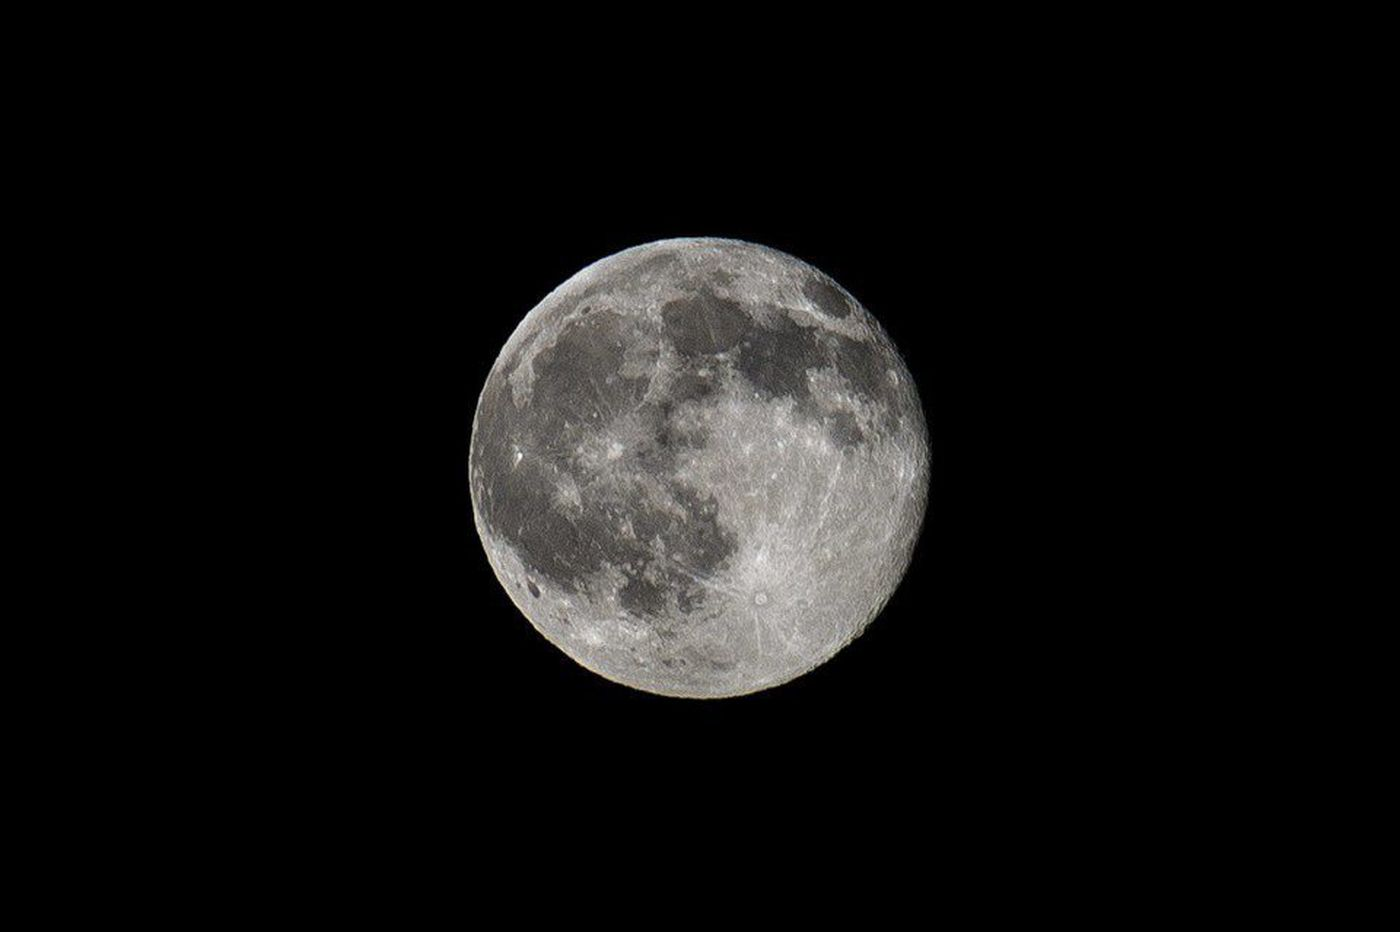 Catch the last full moon of the year at 12:12 a.m. on 12-12